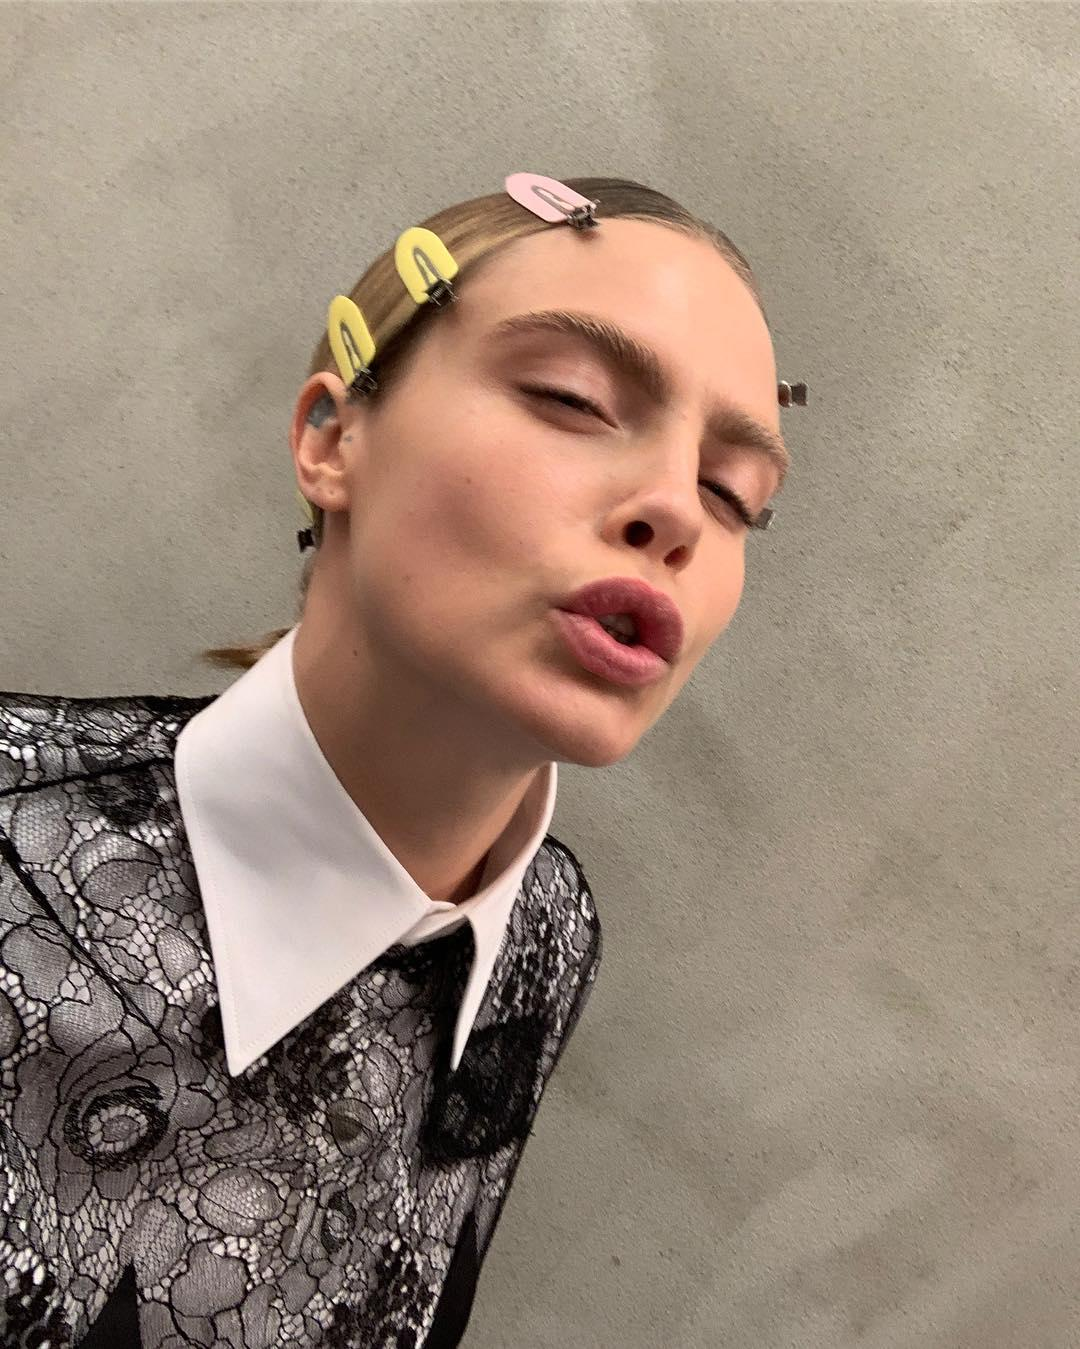 Cara Delevingne poses in a unique pout on Instagram